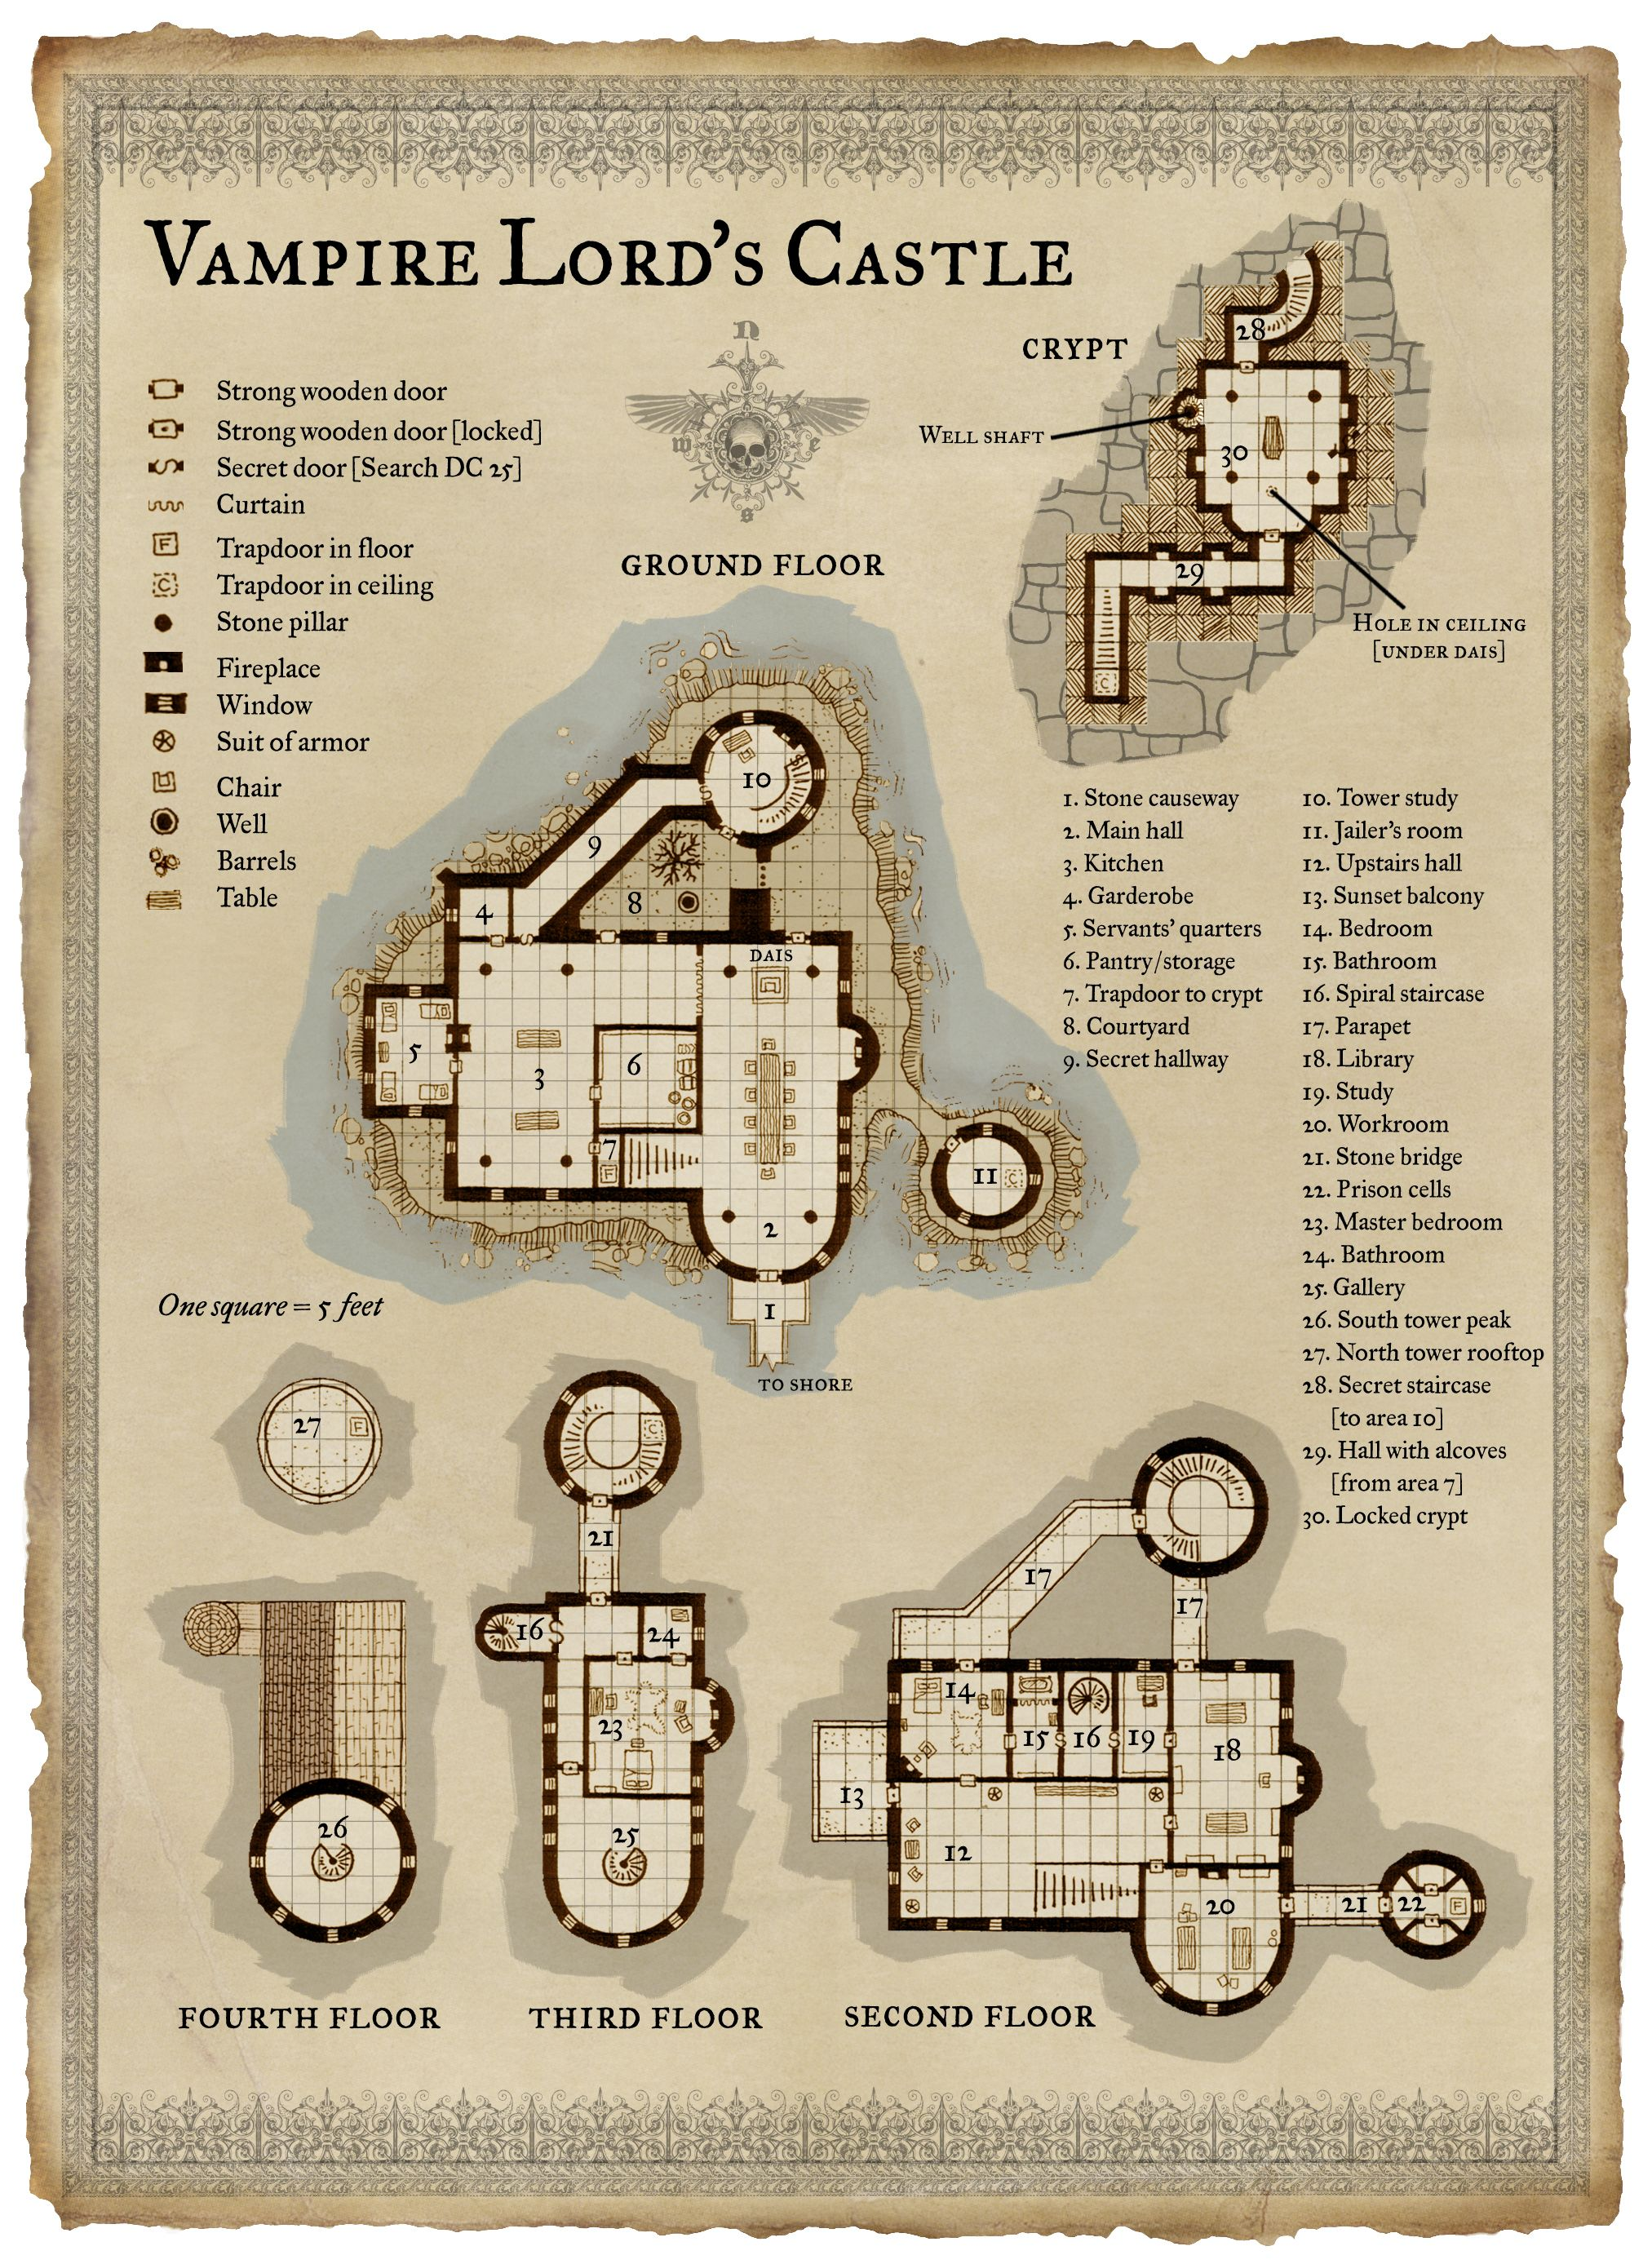 Dnd Castle Map : castle, Vampire, Lord's, Castle, Dungeon, Maps,, Pathfinder